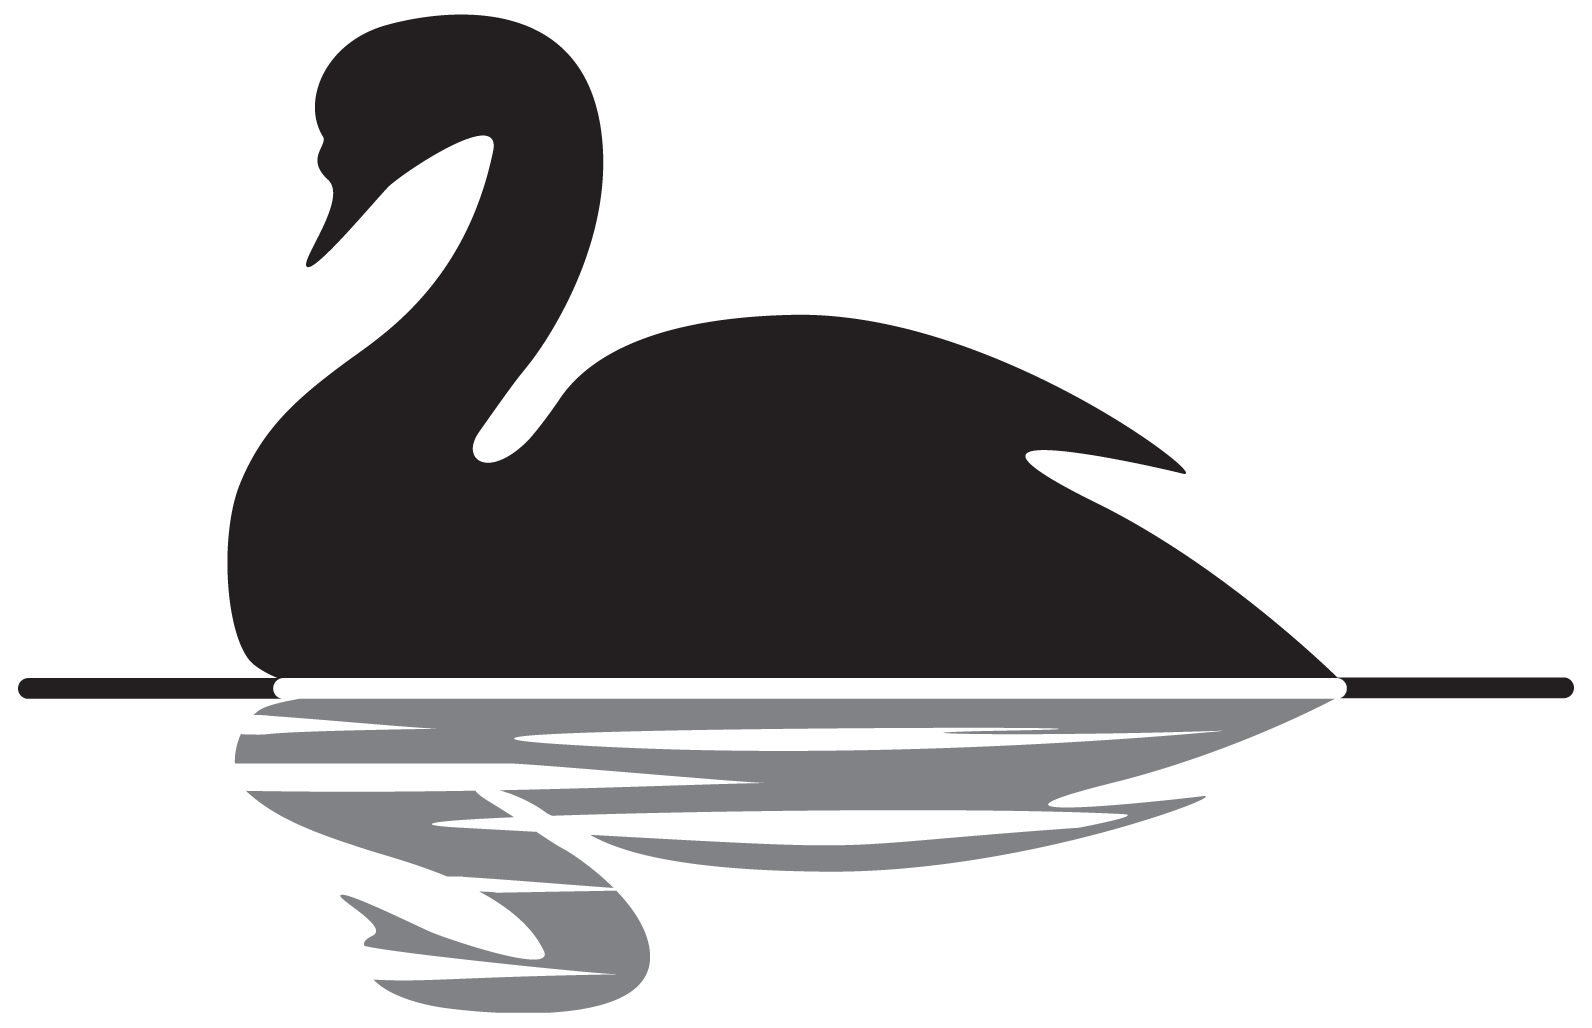 House painting clipart black and white vector black and white library Swan Clipart Black And White | Free download best Swan Clipart Black ... vector black and white library